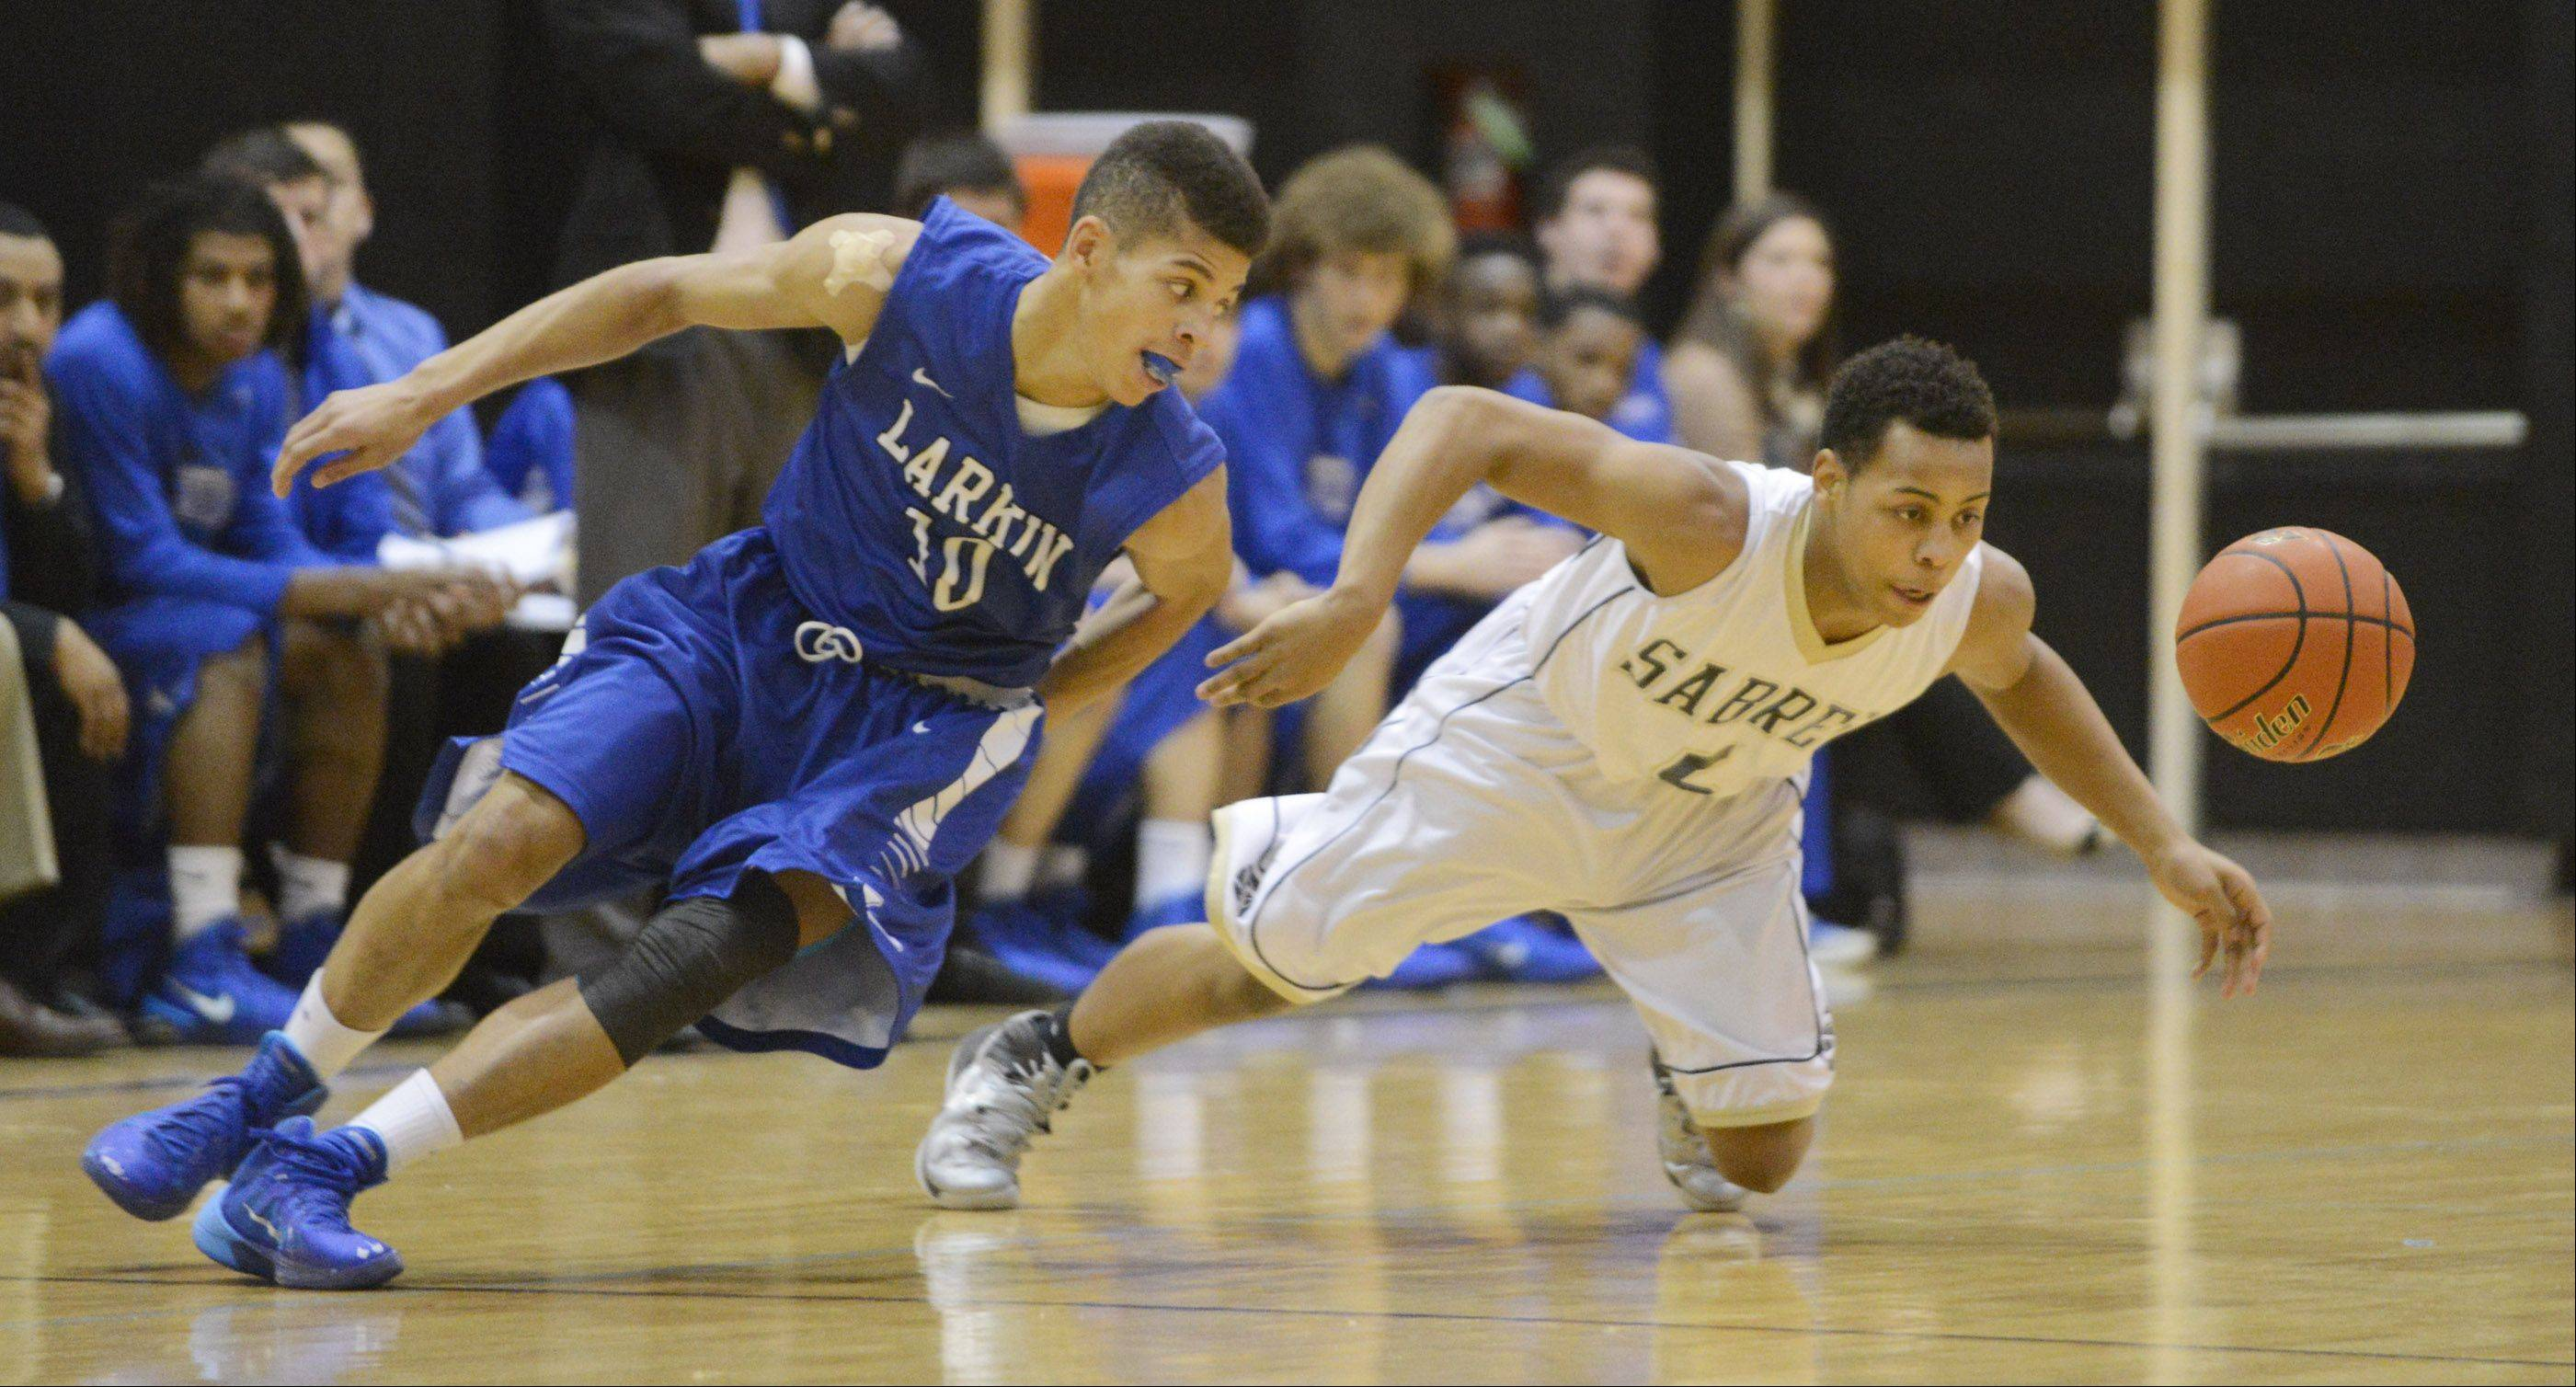 Streamwood's Kiantae Allen and Larkin's Kendale McCullum turn for a loose ball Wednesday in Streamwood.